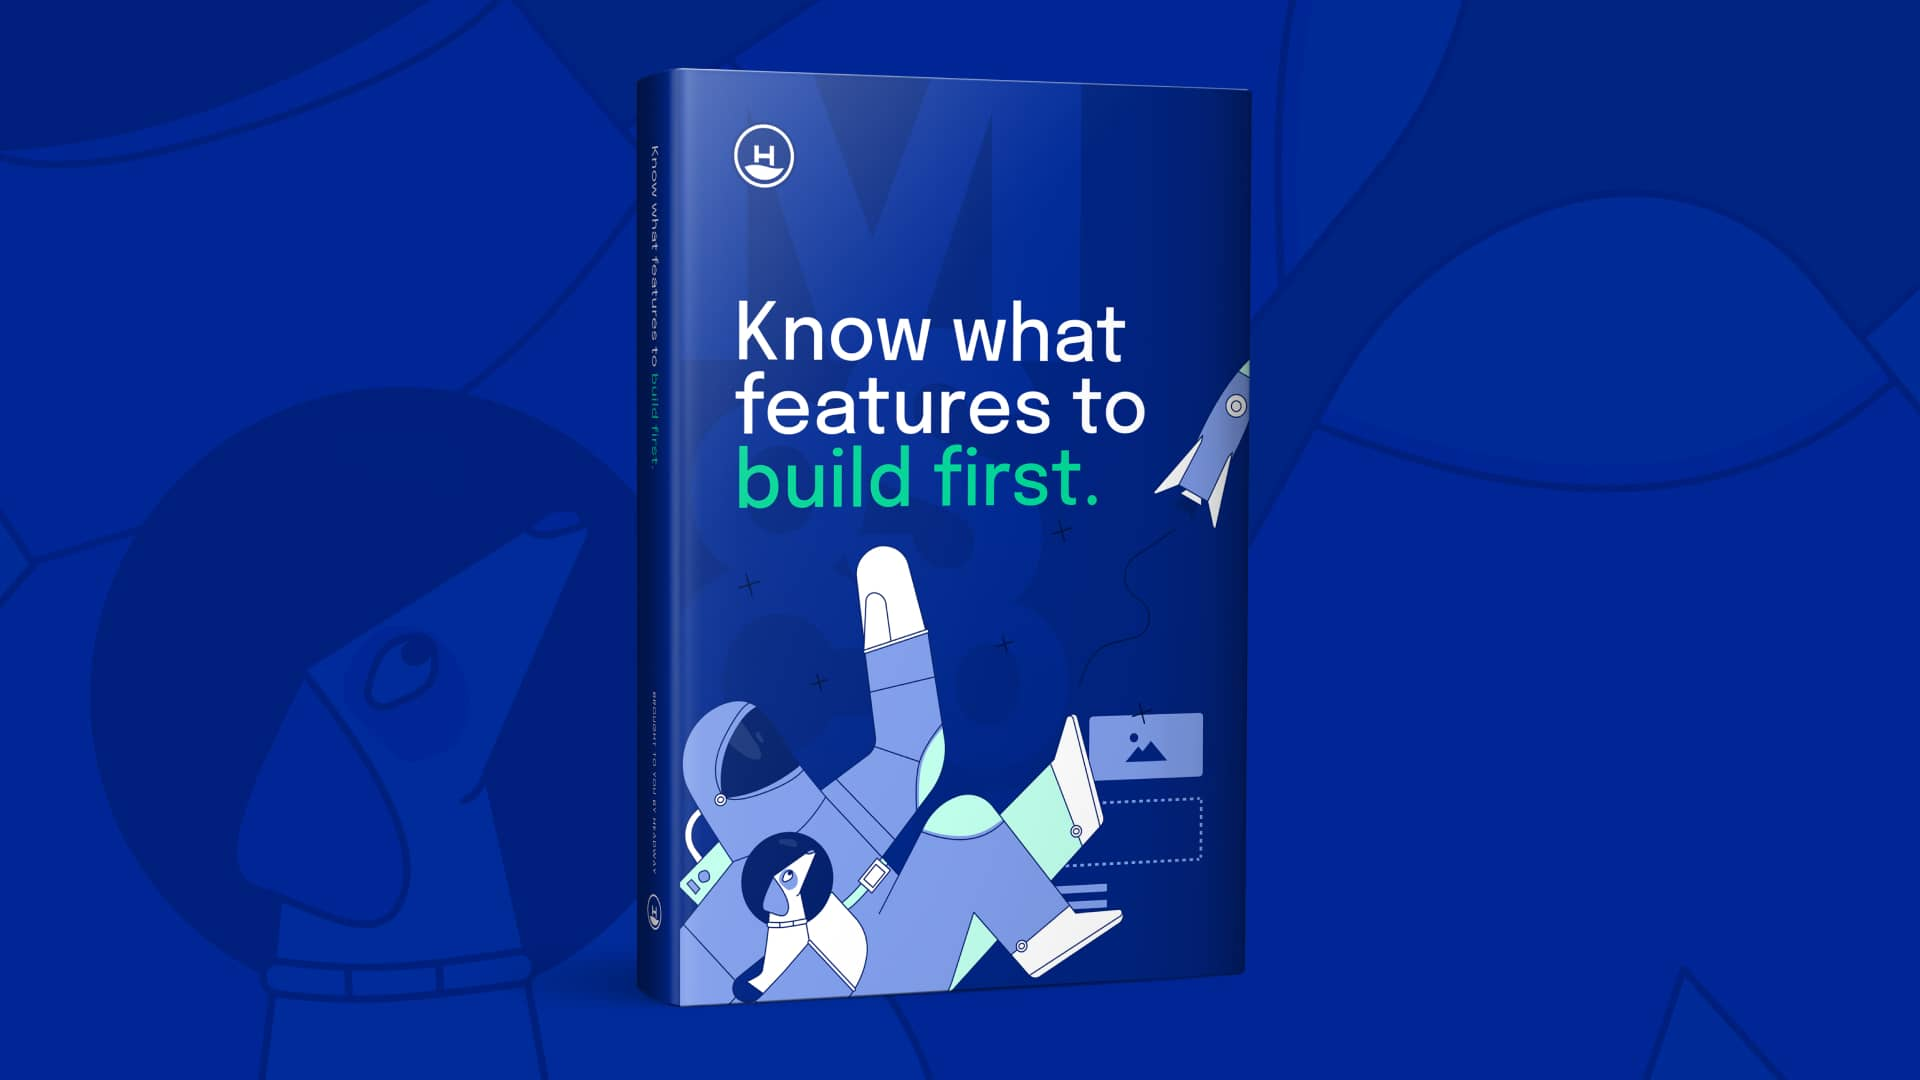 Know what features to build first